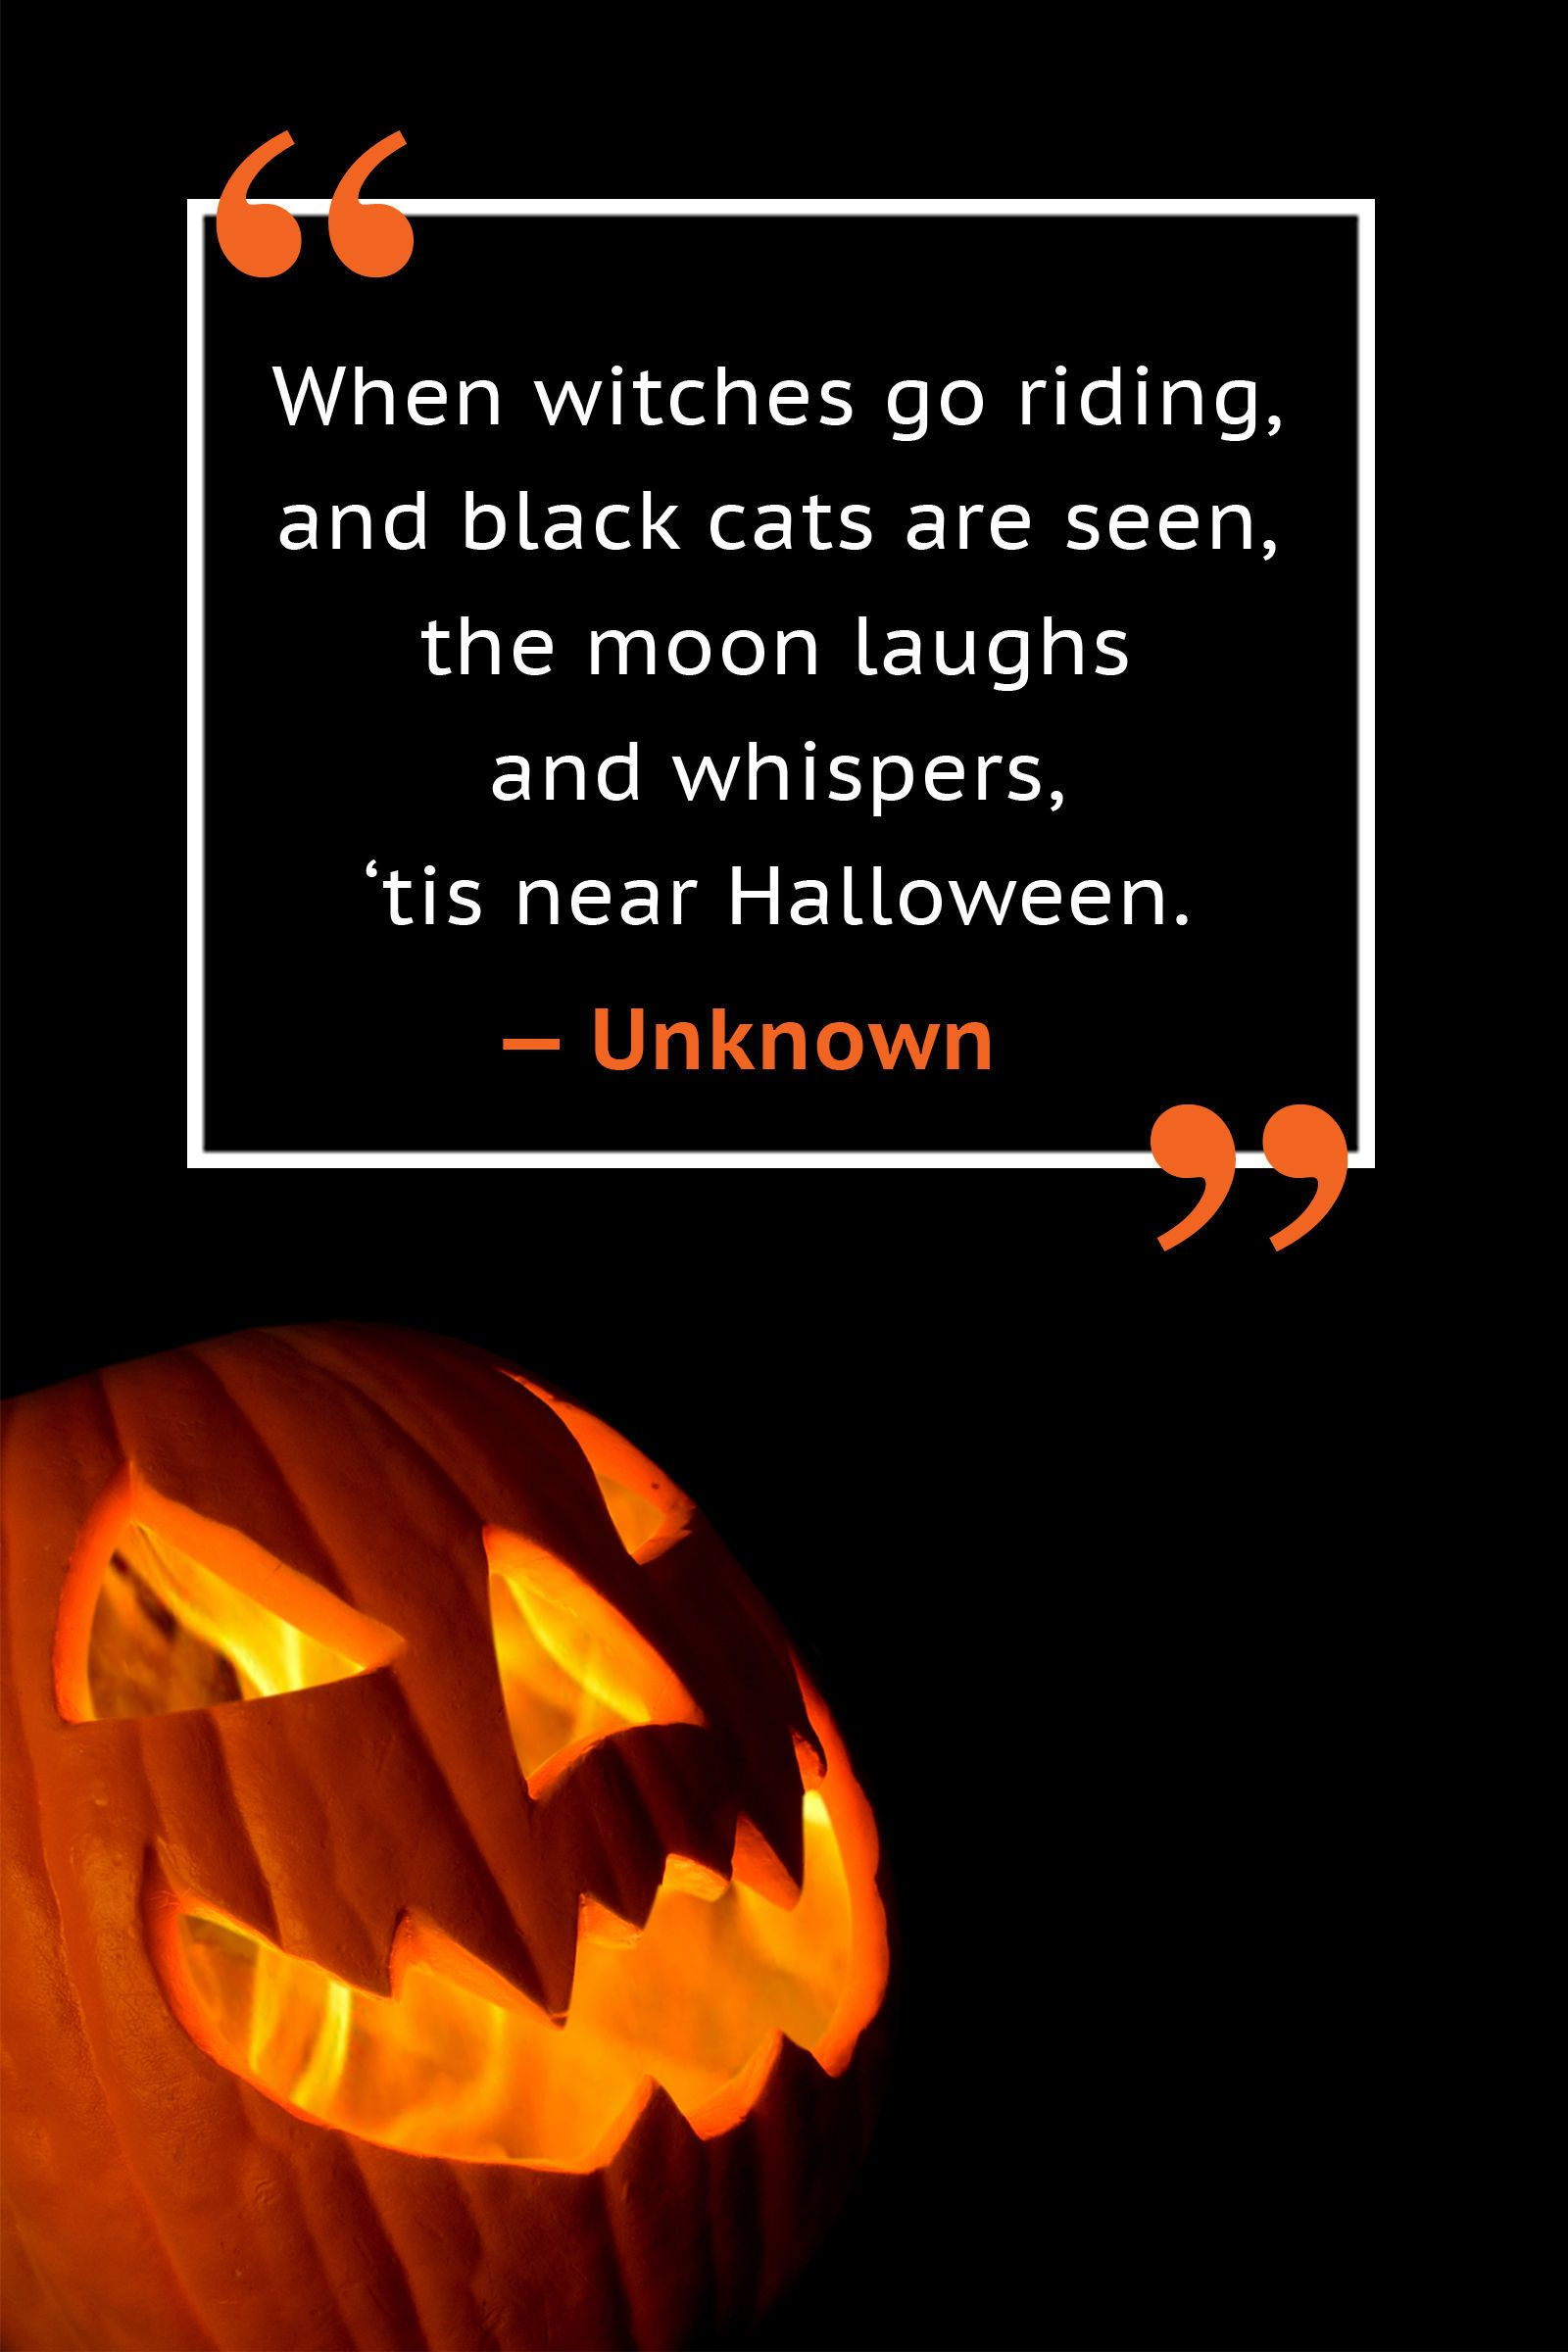 20 halloween quotes that are the definition of spooky | halloween